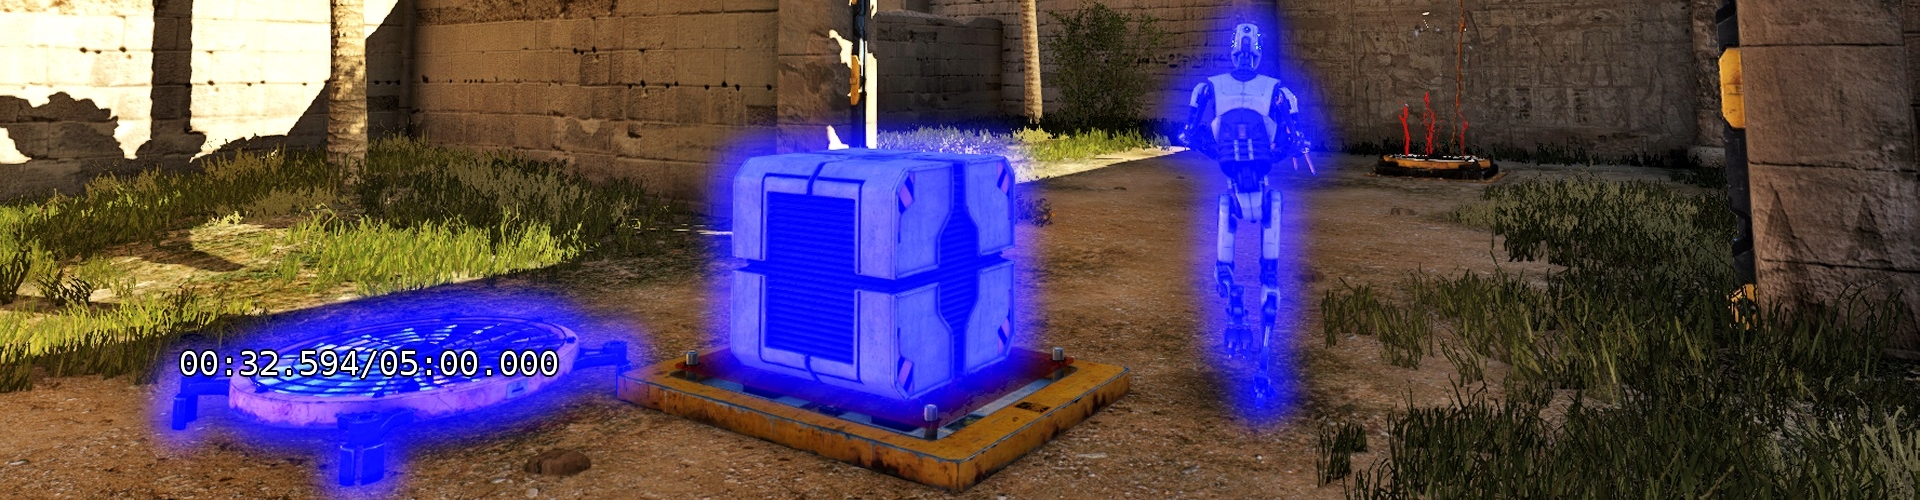 The Talos Principle: Deluxe Edition im Test - Gott will, dass ich Puzzles löse!